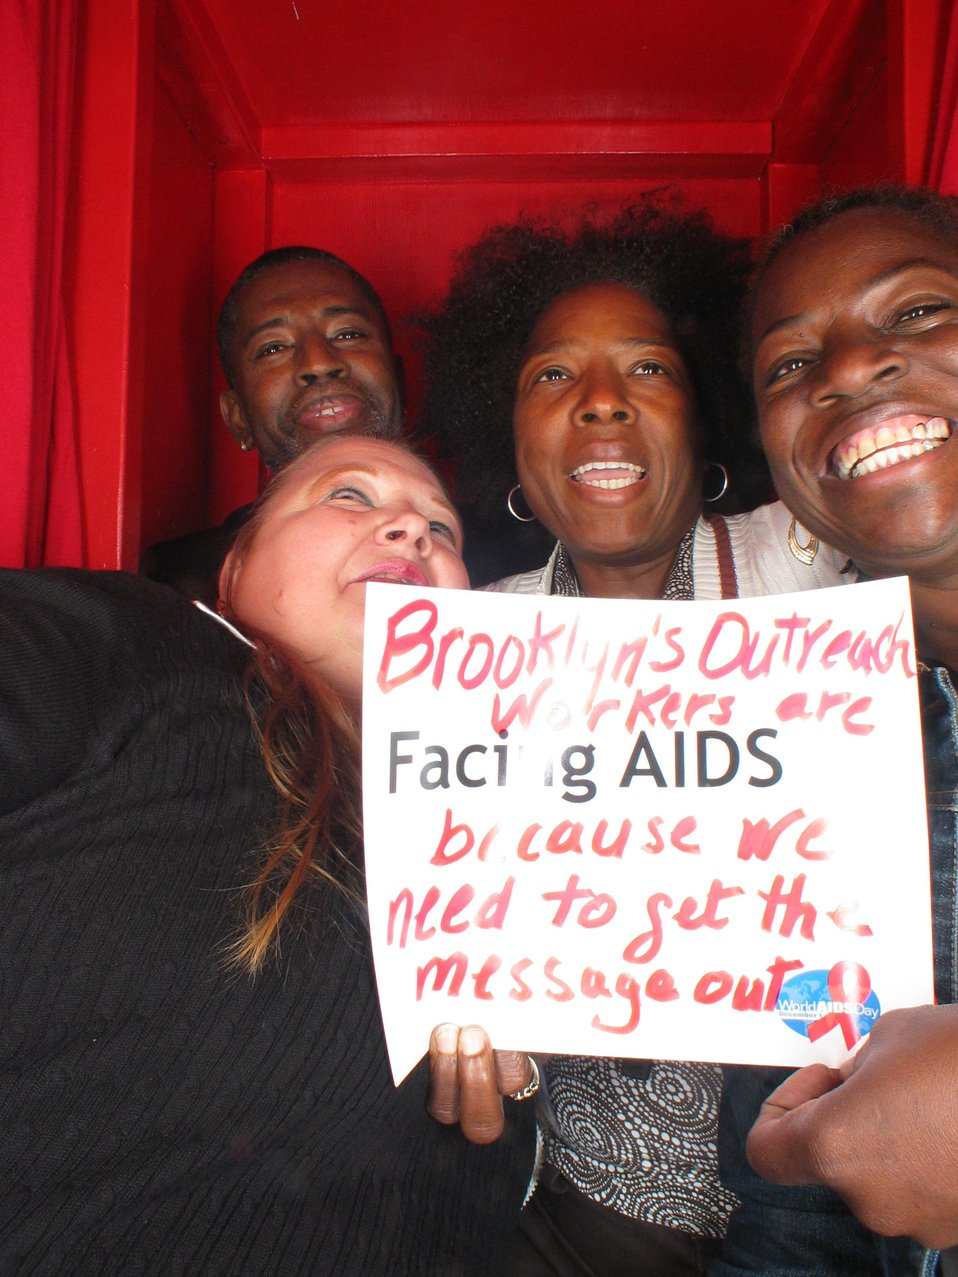 Brooklyn's outreach workers are Facing AIDS because we need to get the message out.